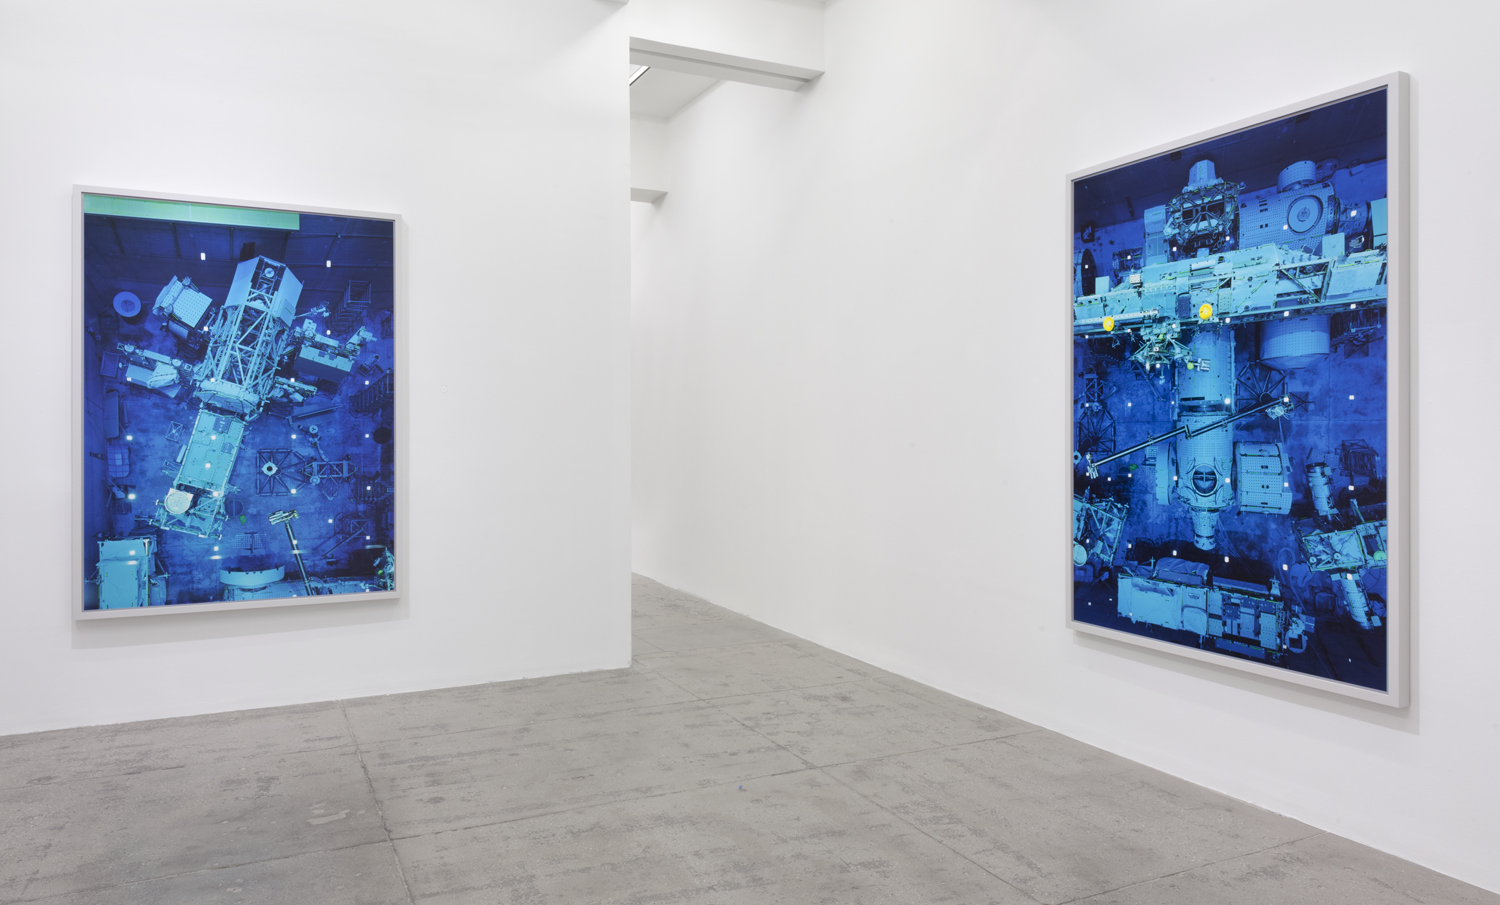 Thomas Struth New Works At Marian Goodman Gallery New York  # Muebles Memento